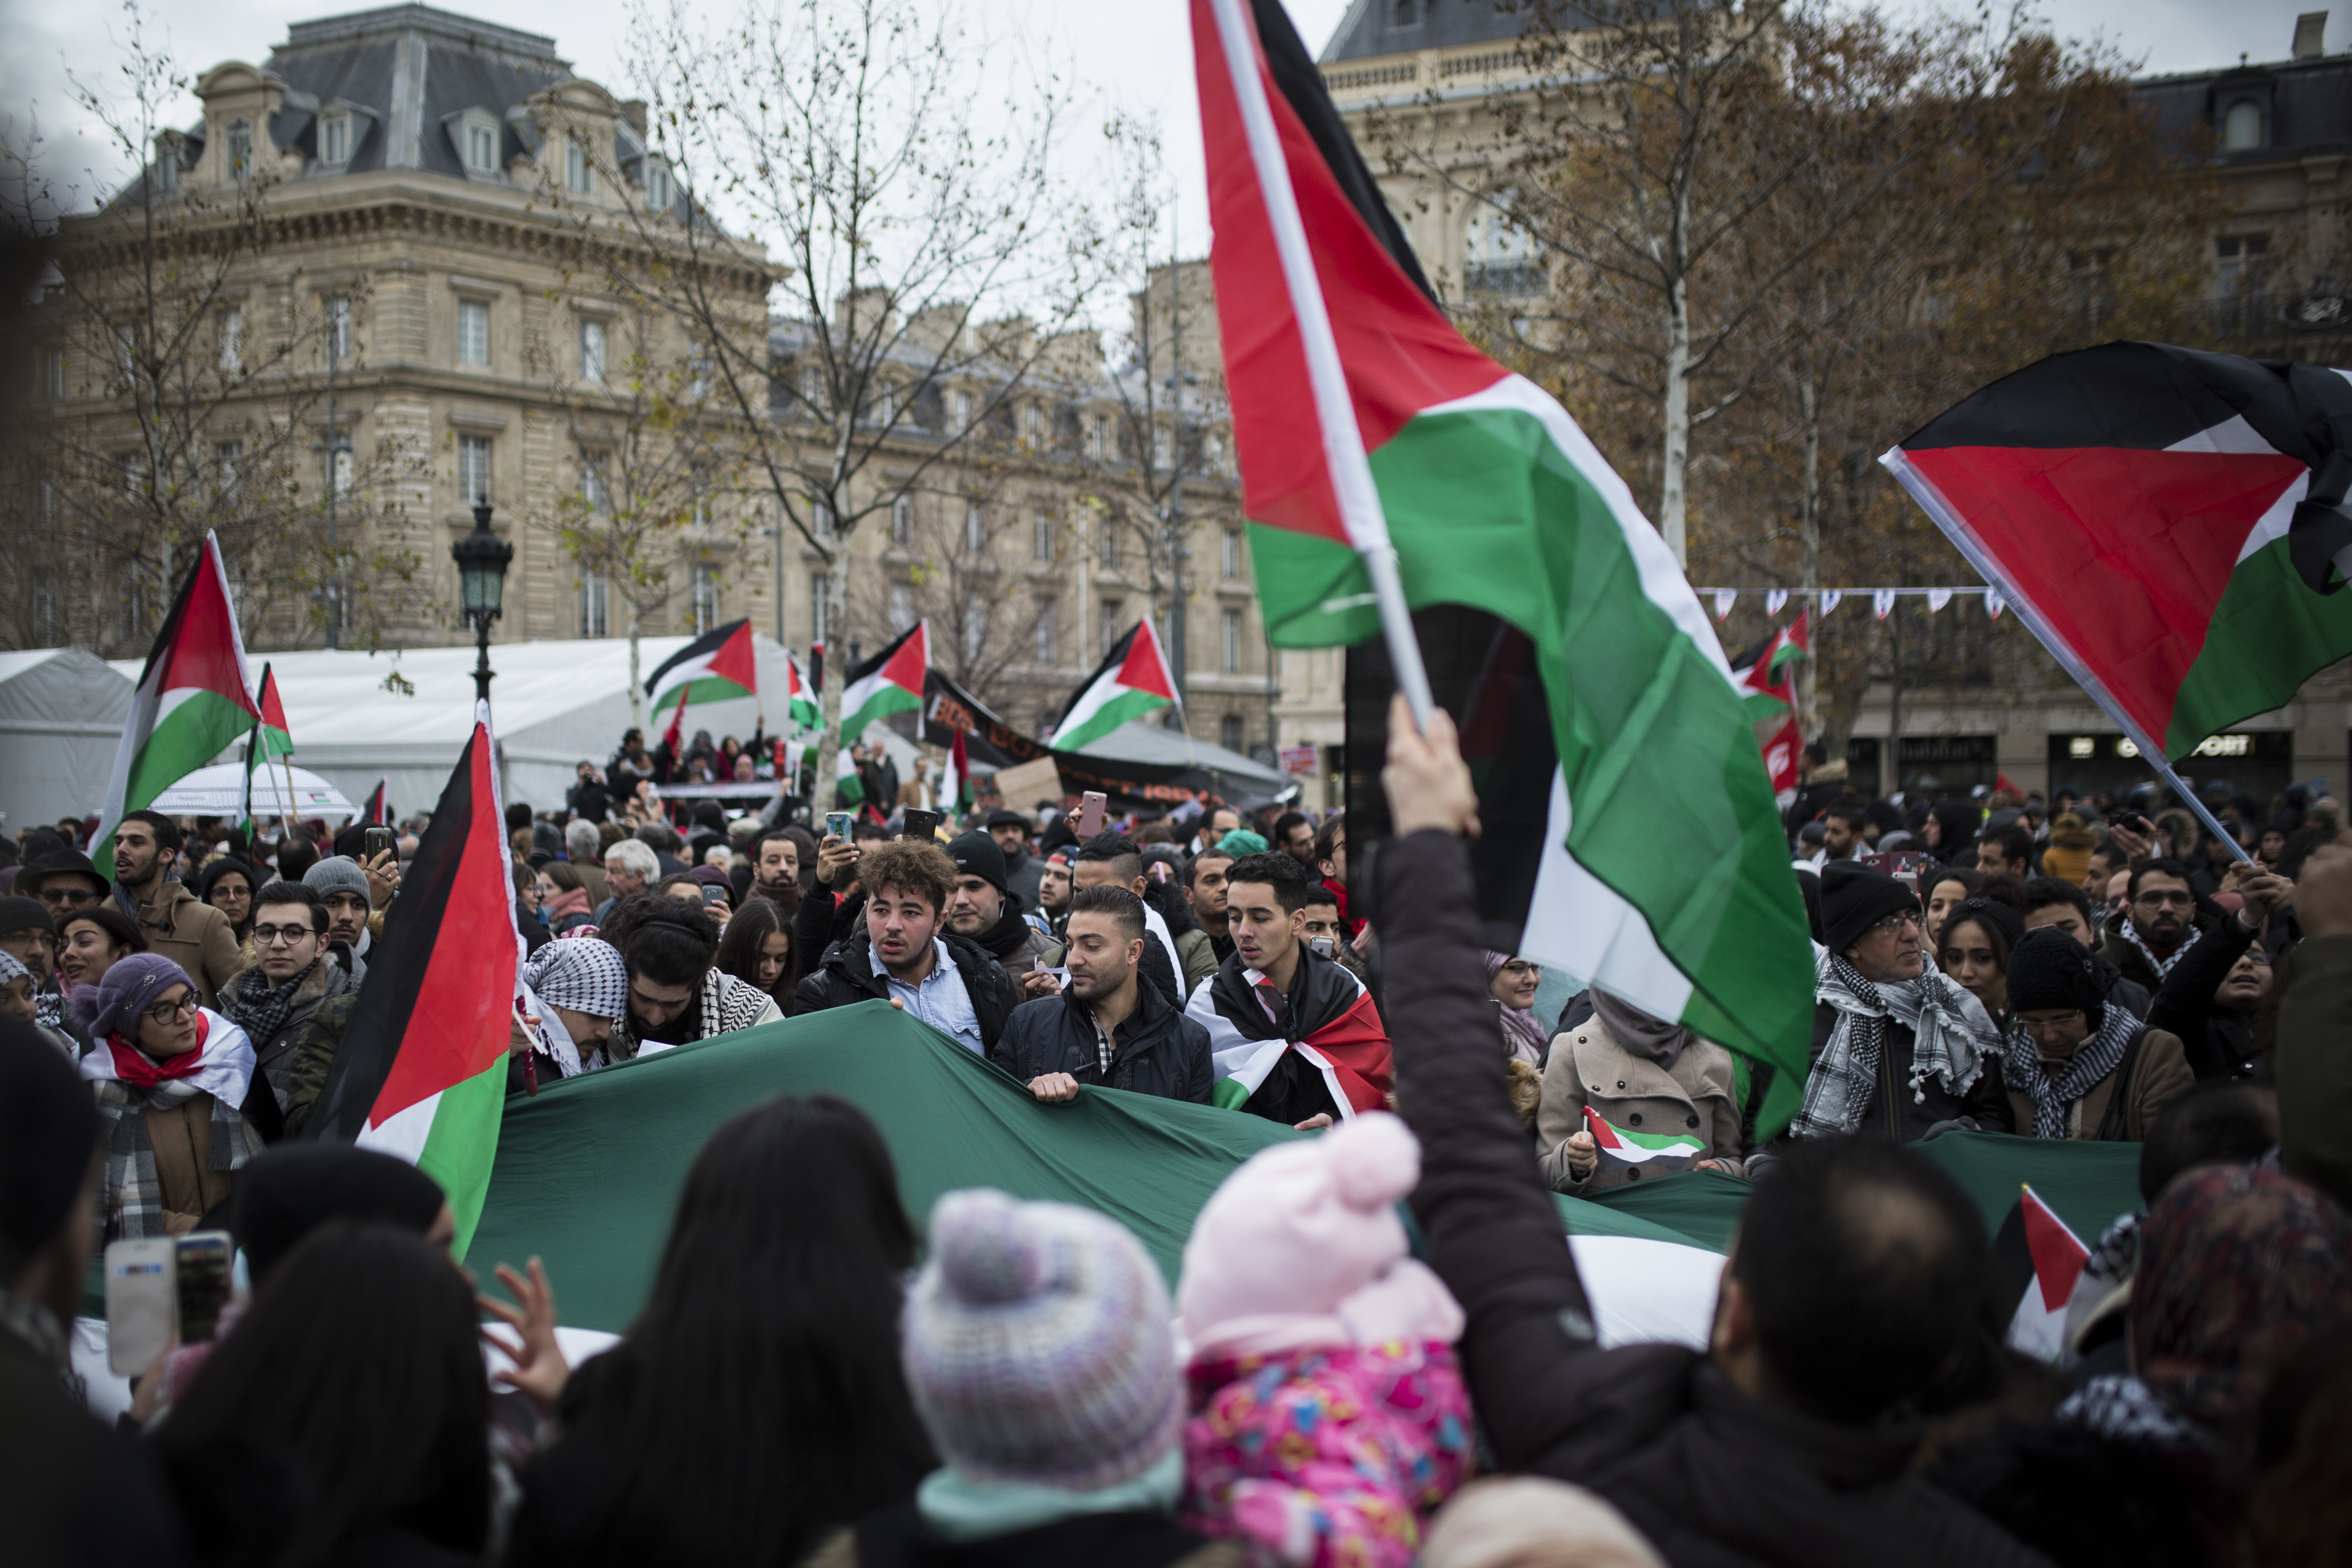 Demonstrators shout as they hold Palestinian flags during a protest against U.S. President Donald Trump's decision to recognize Jerusalem as Israel's capital, at Republique Square in Paris, France, Dec. 9, 2017.